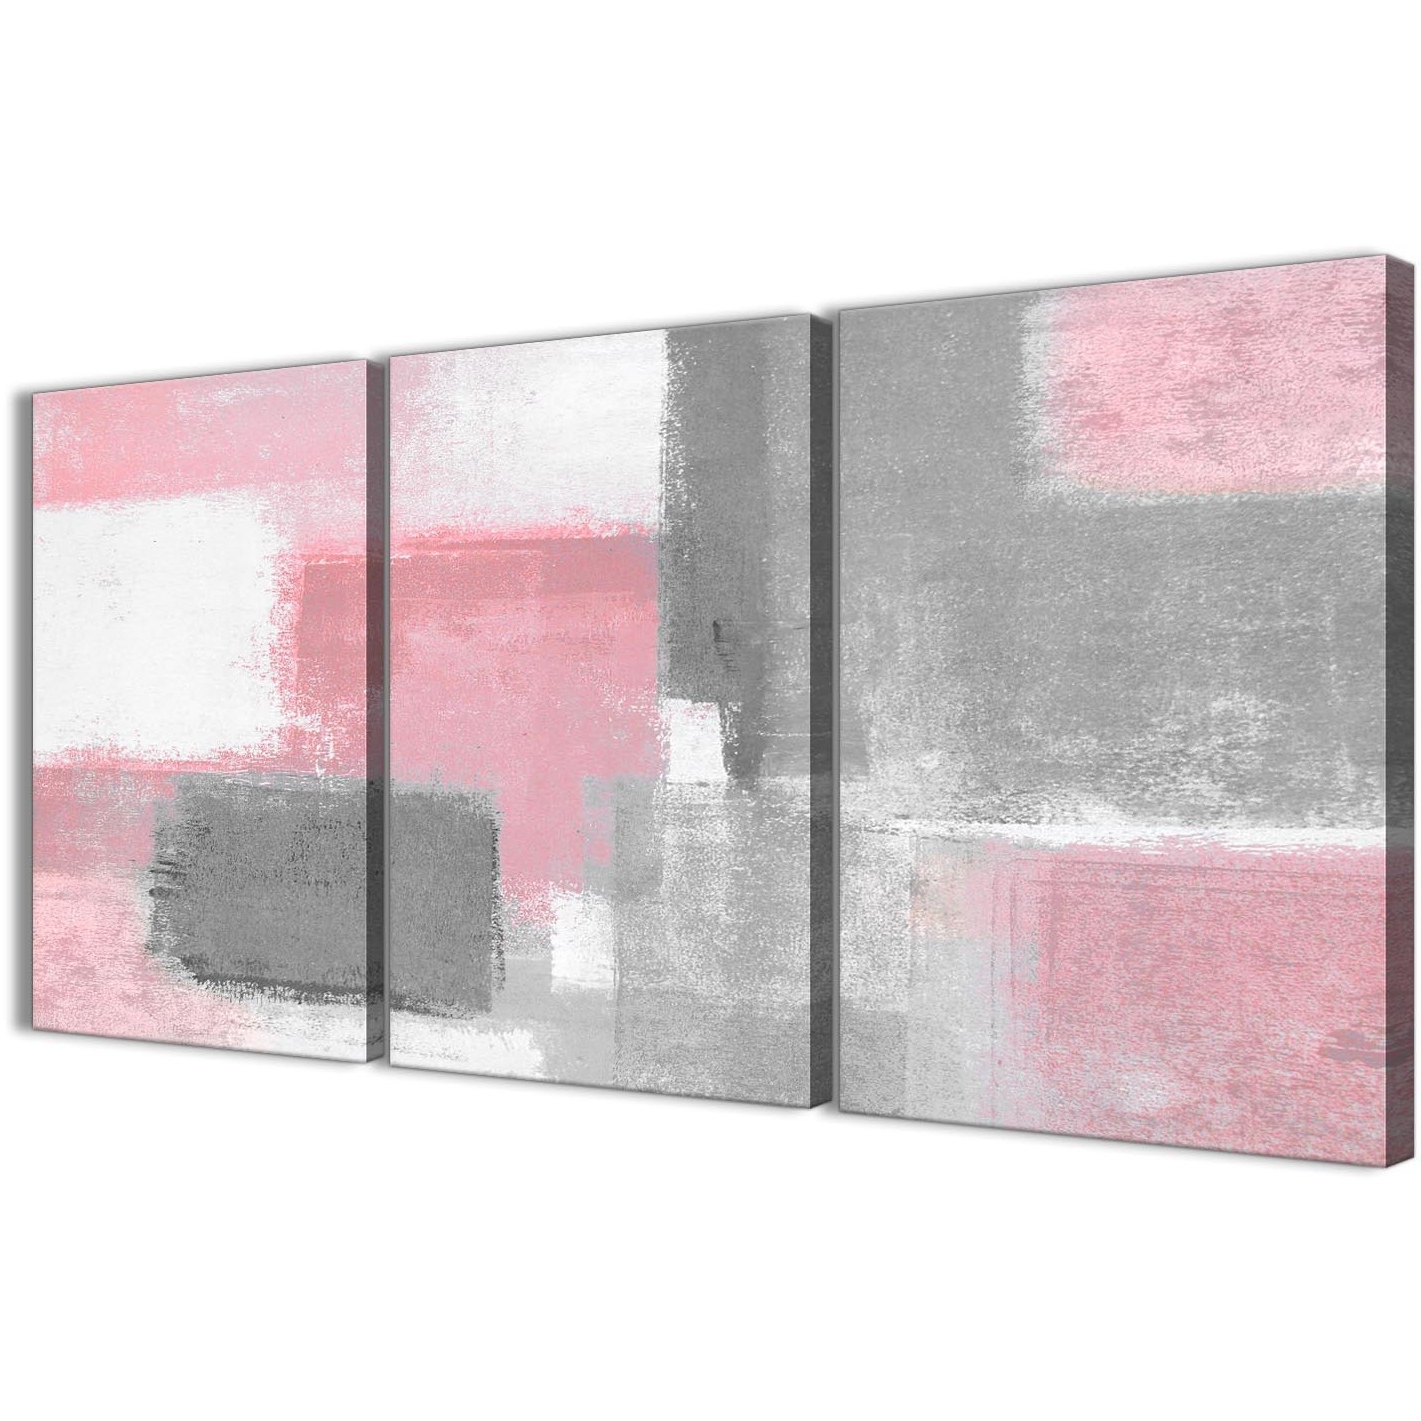 3 Piece Blush Pink Grey Painting Office Canvas Wall Art Decor Pertaining To Most Recently Released Gray Canvas Wall Art (View 10 of 20)